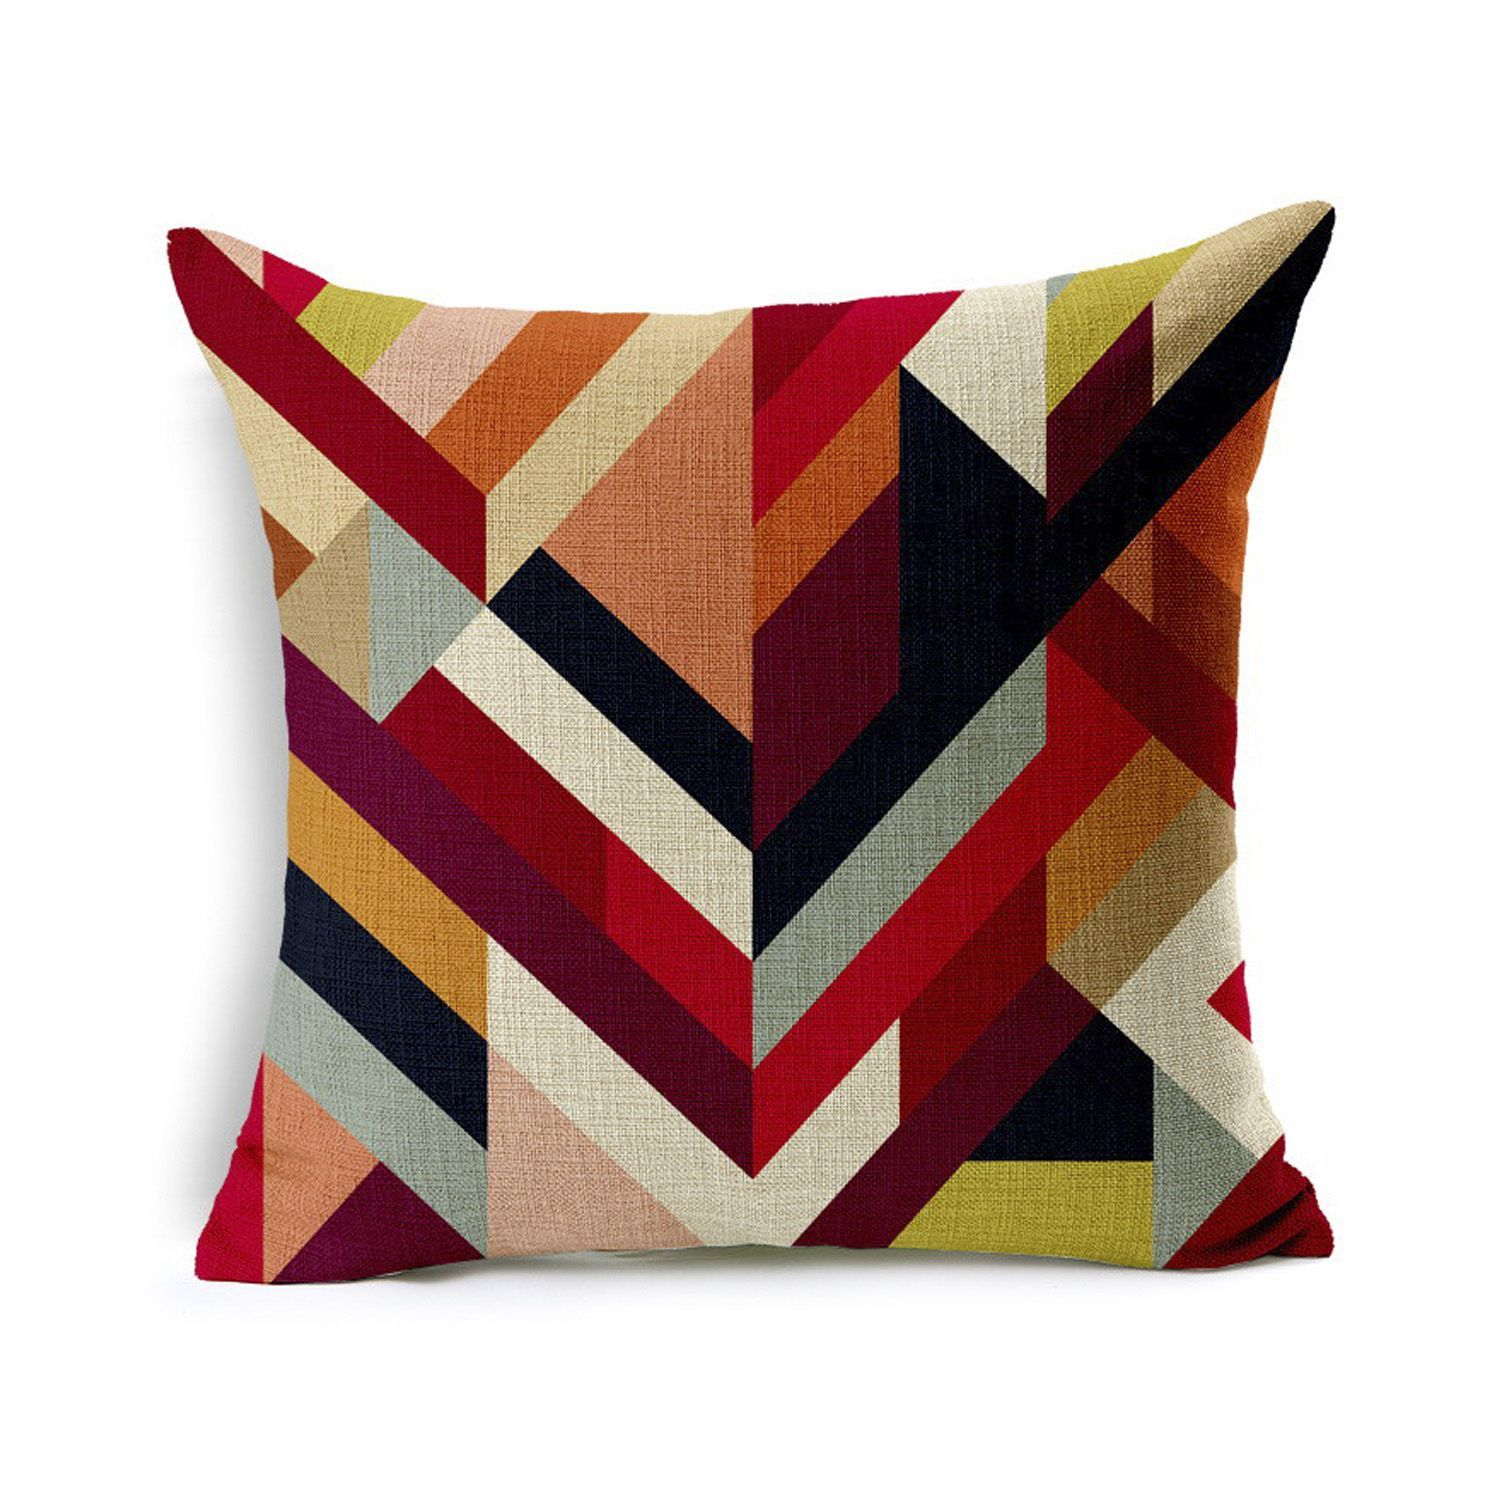 Simple Geometry Cotton Linen Pillow Case Sofa Throw Cushion Cover